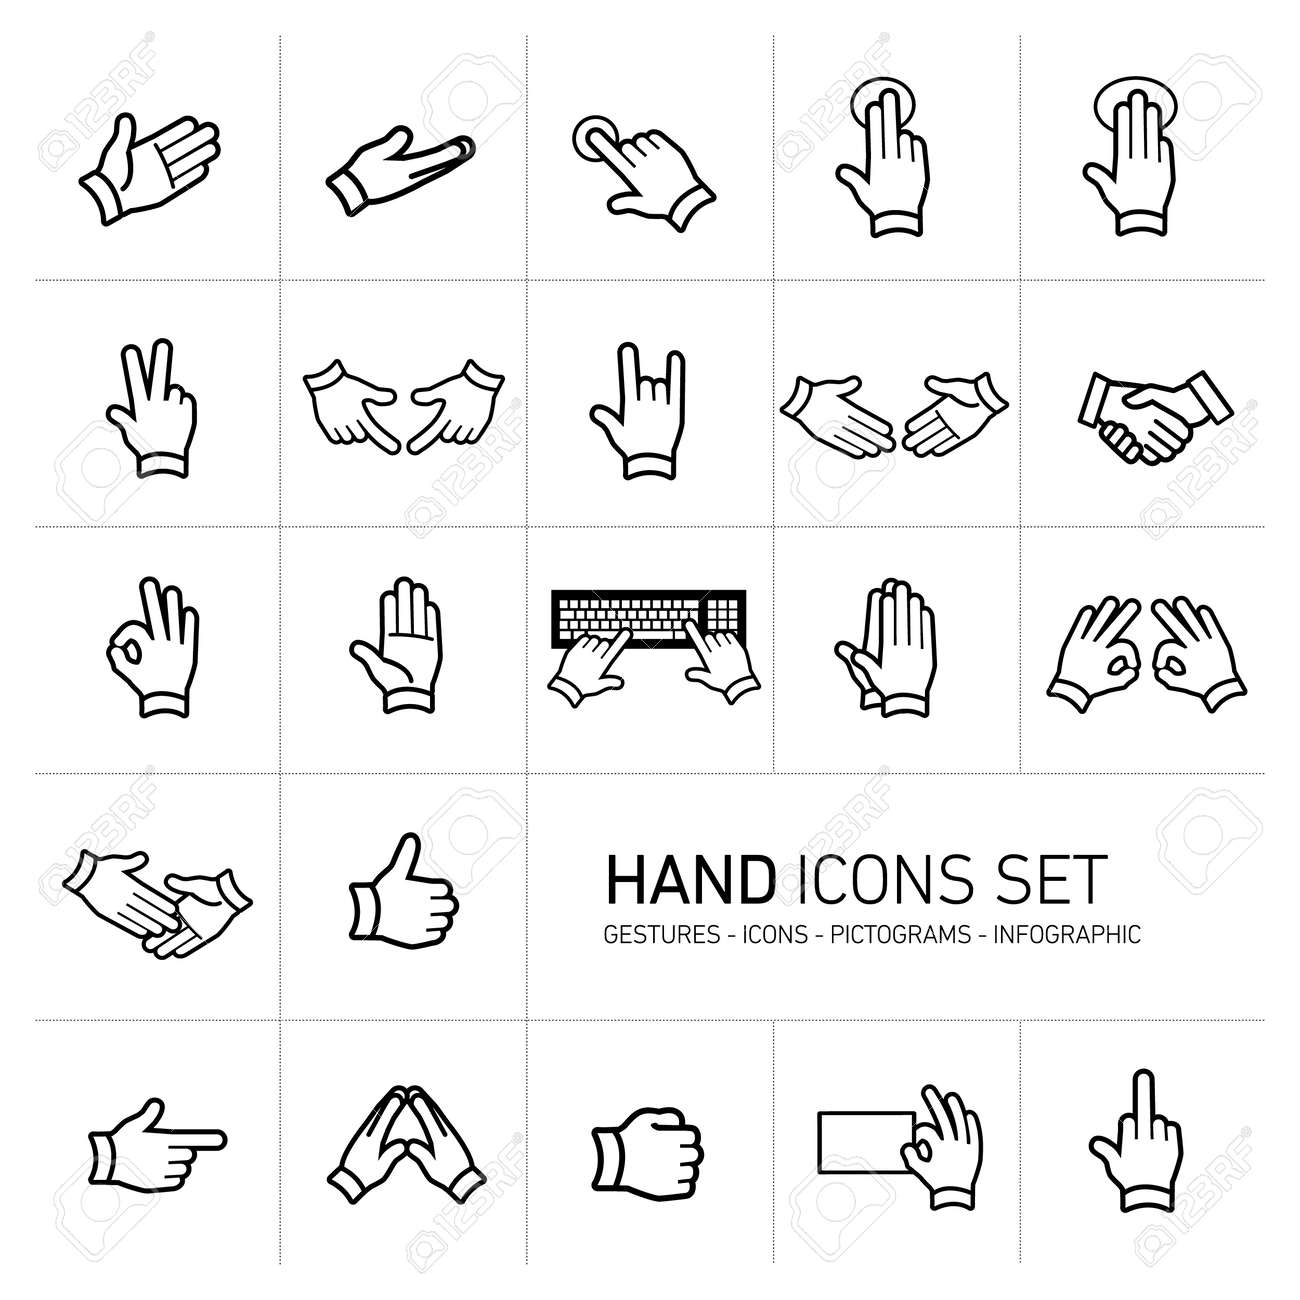 modern flat design vector hand icons and pictograms set black isolated on white background - 27595674